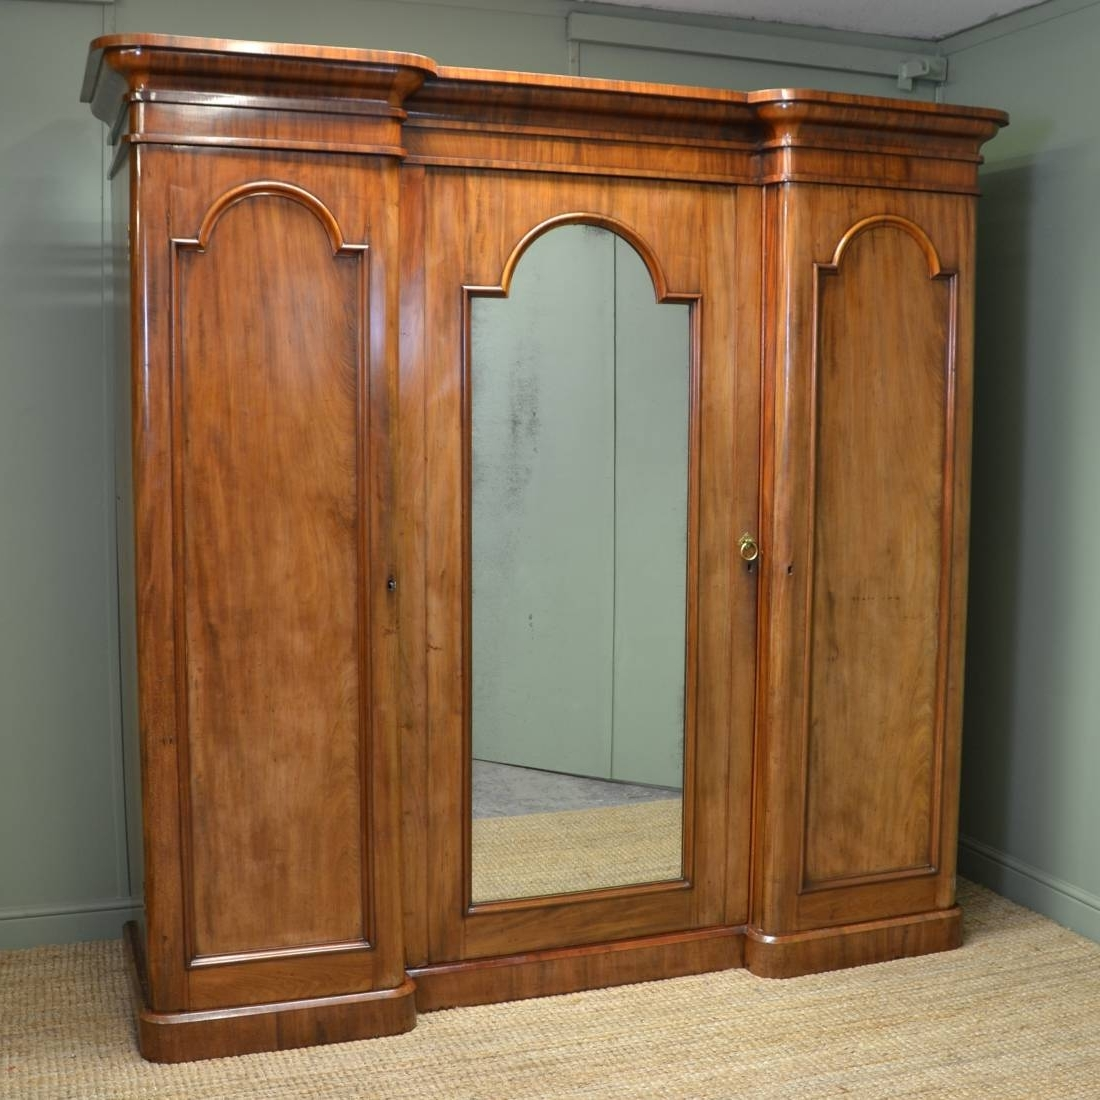 Most Recent Antique Triple Wardrobes With Regard To Large Victorian Mahogany Antique Triple Wardrobe – Antiques World (View 11 of 15)